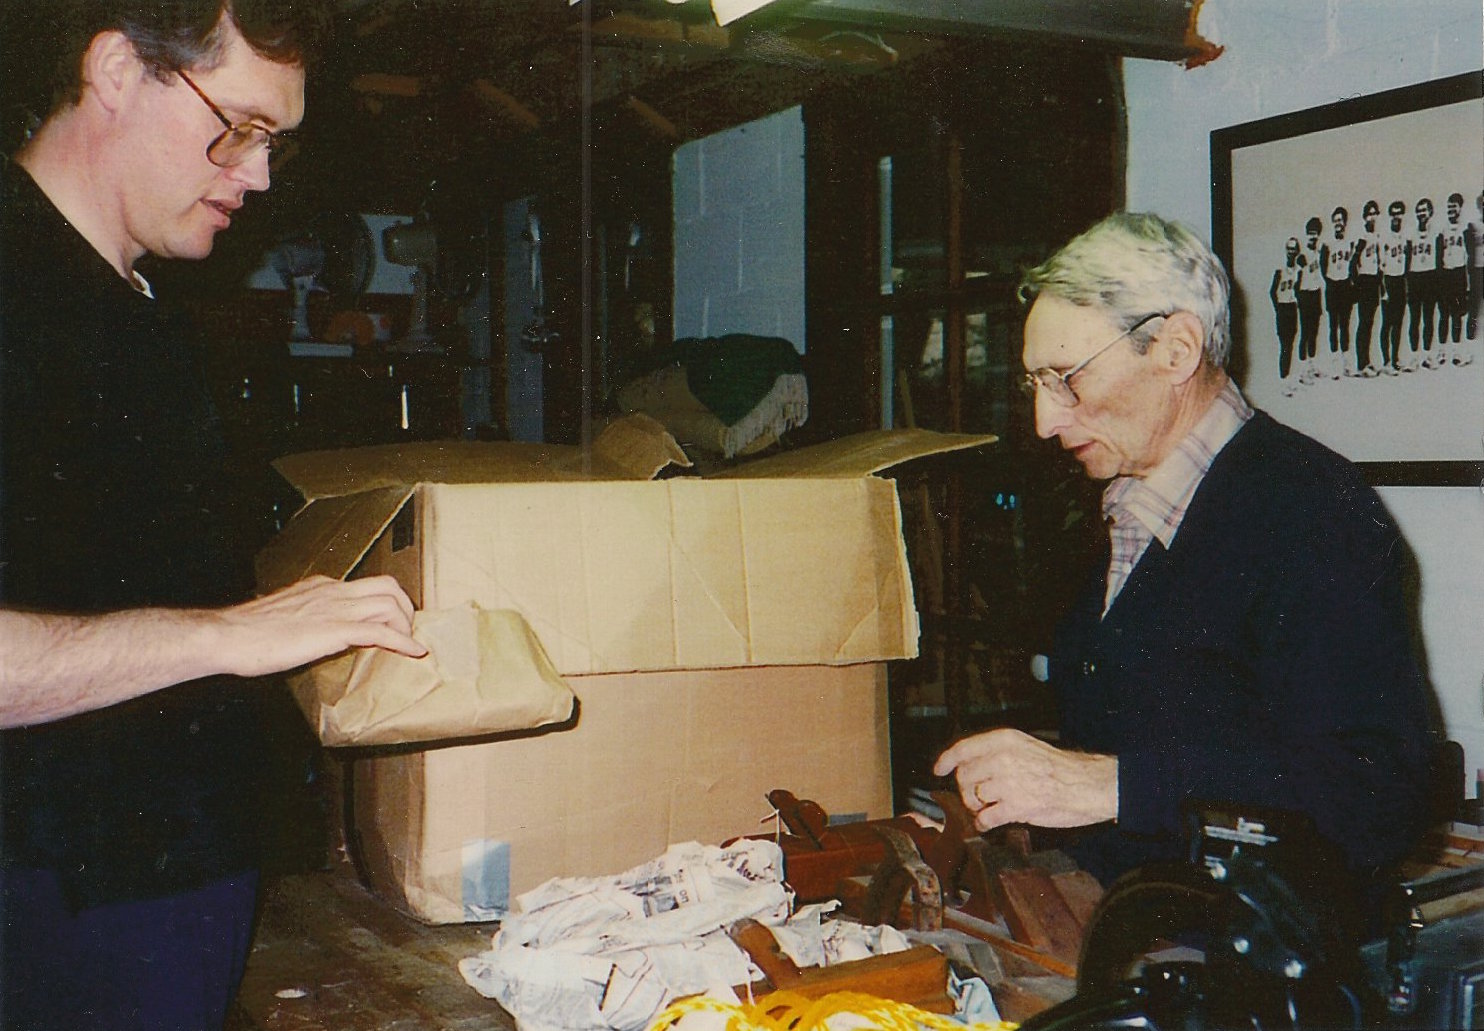 Wendall and me unwrapping some planes I had in WI